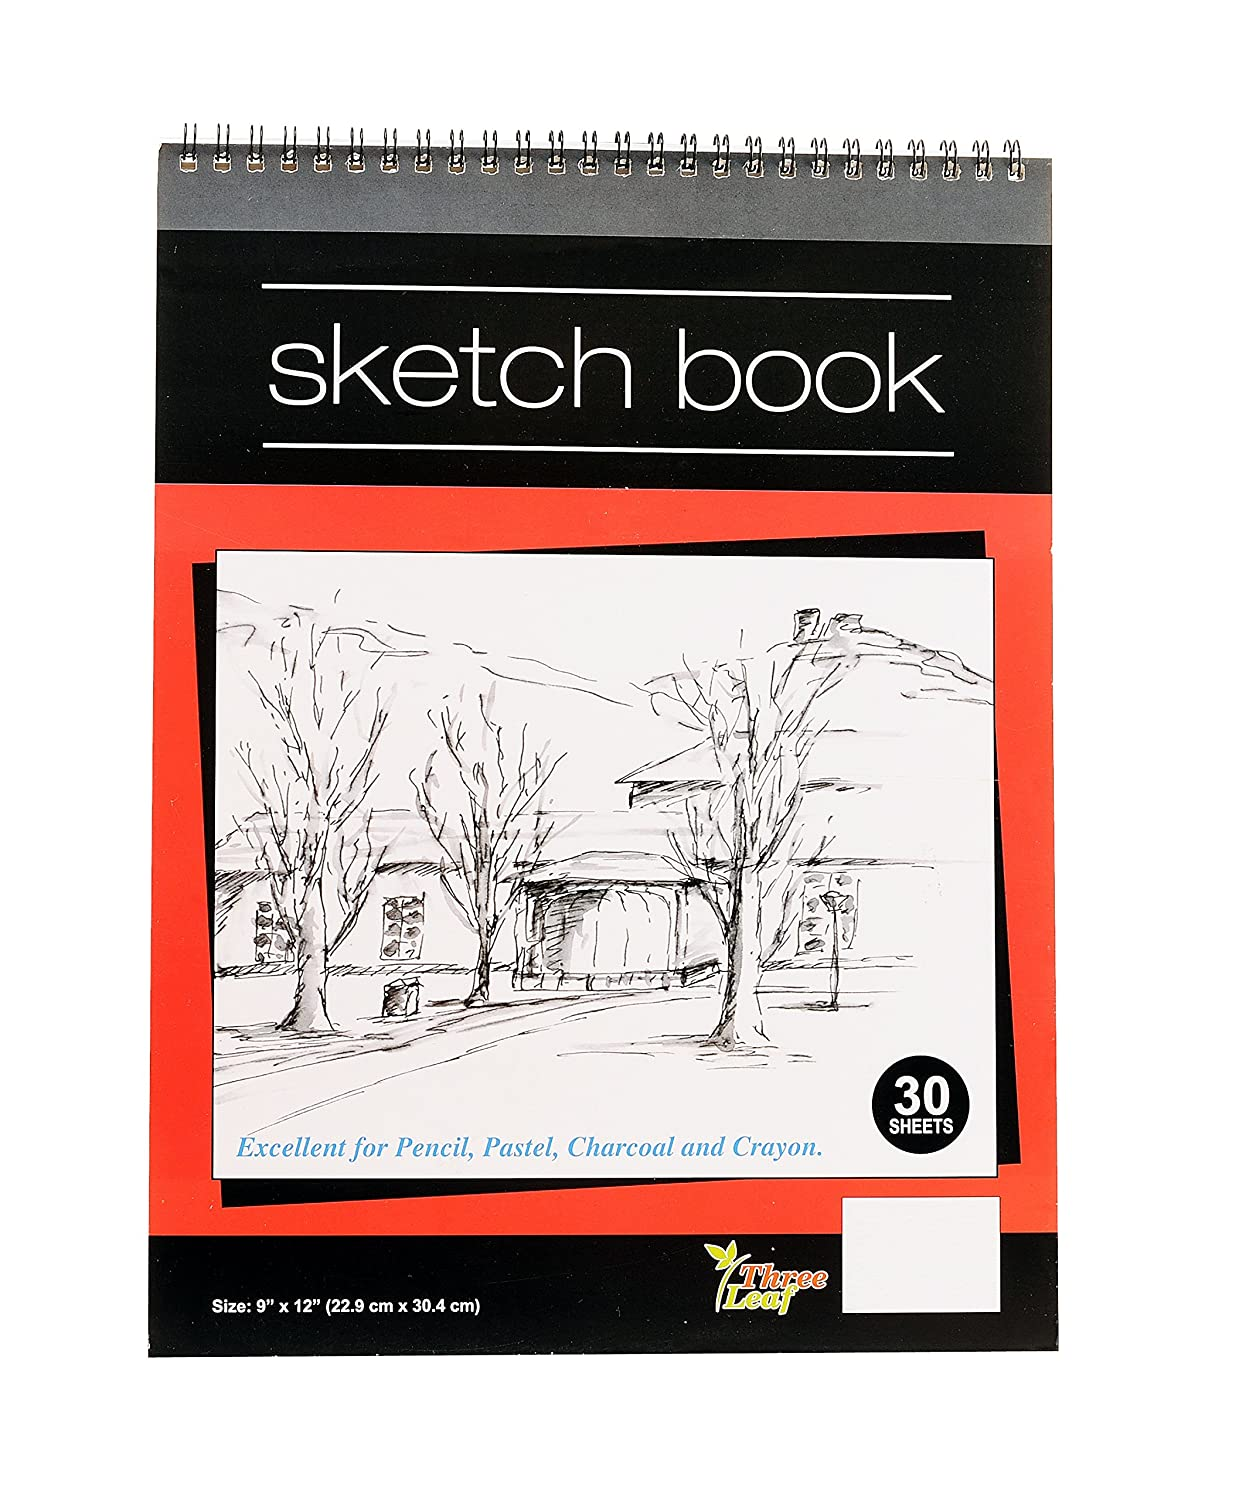 Pastel Excellent for Pencil 1-Sketch Book 9x12-Inch Charcoal and Crayon from Northland Wholesale. 30 Sheets per Book Wired Sketch Book